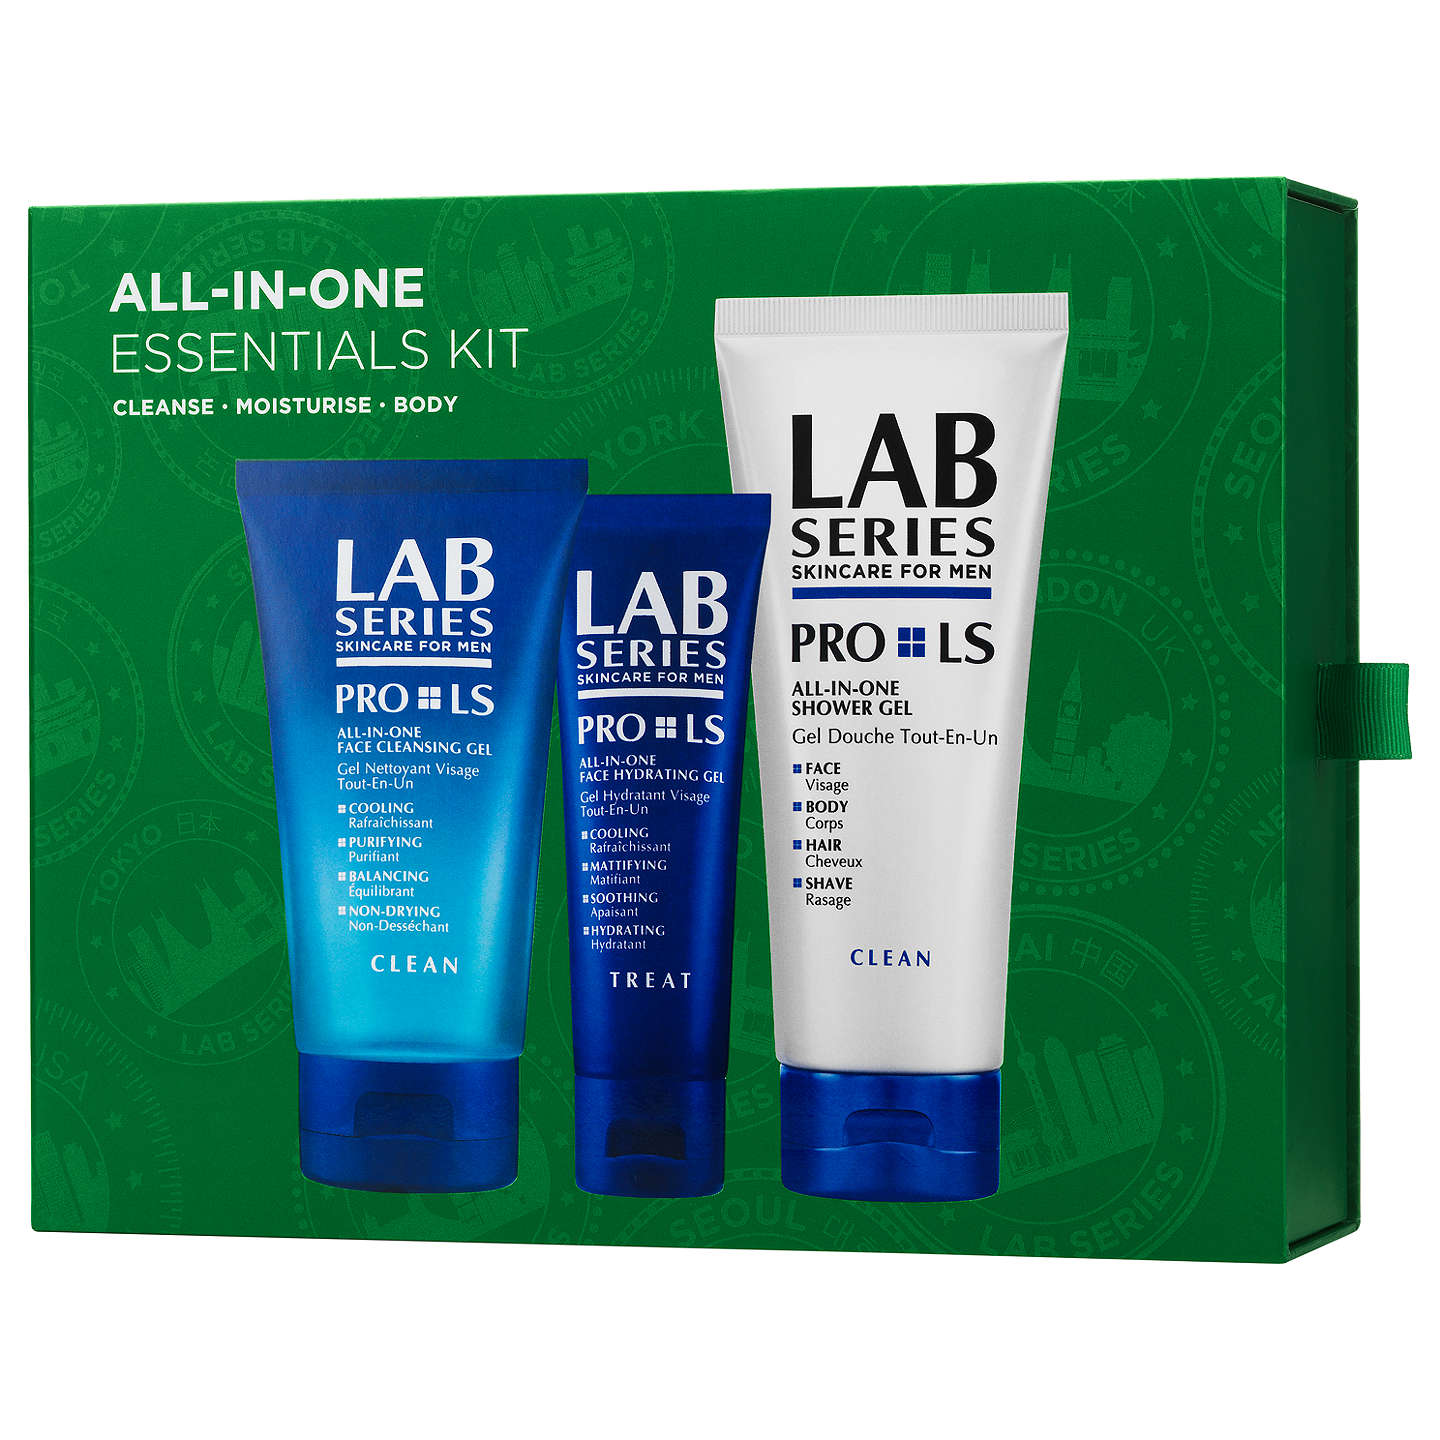 Lab Series All-In-One Essentials Kit at John Lewis